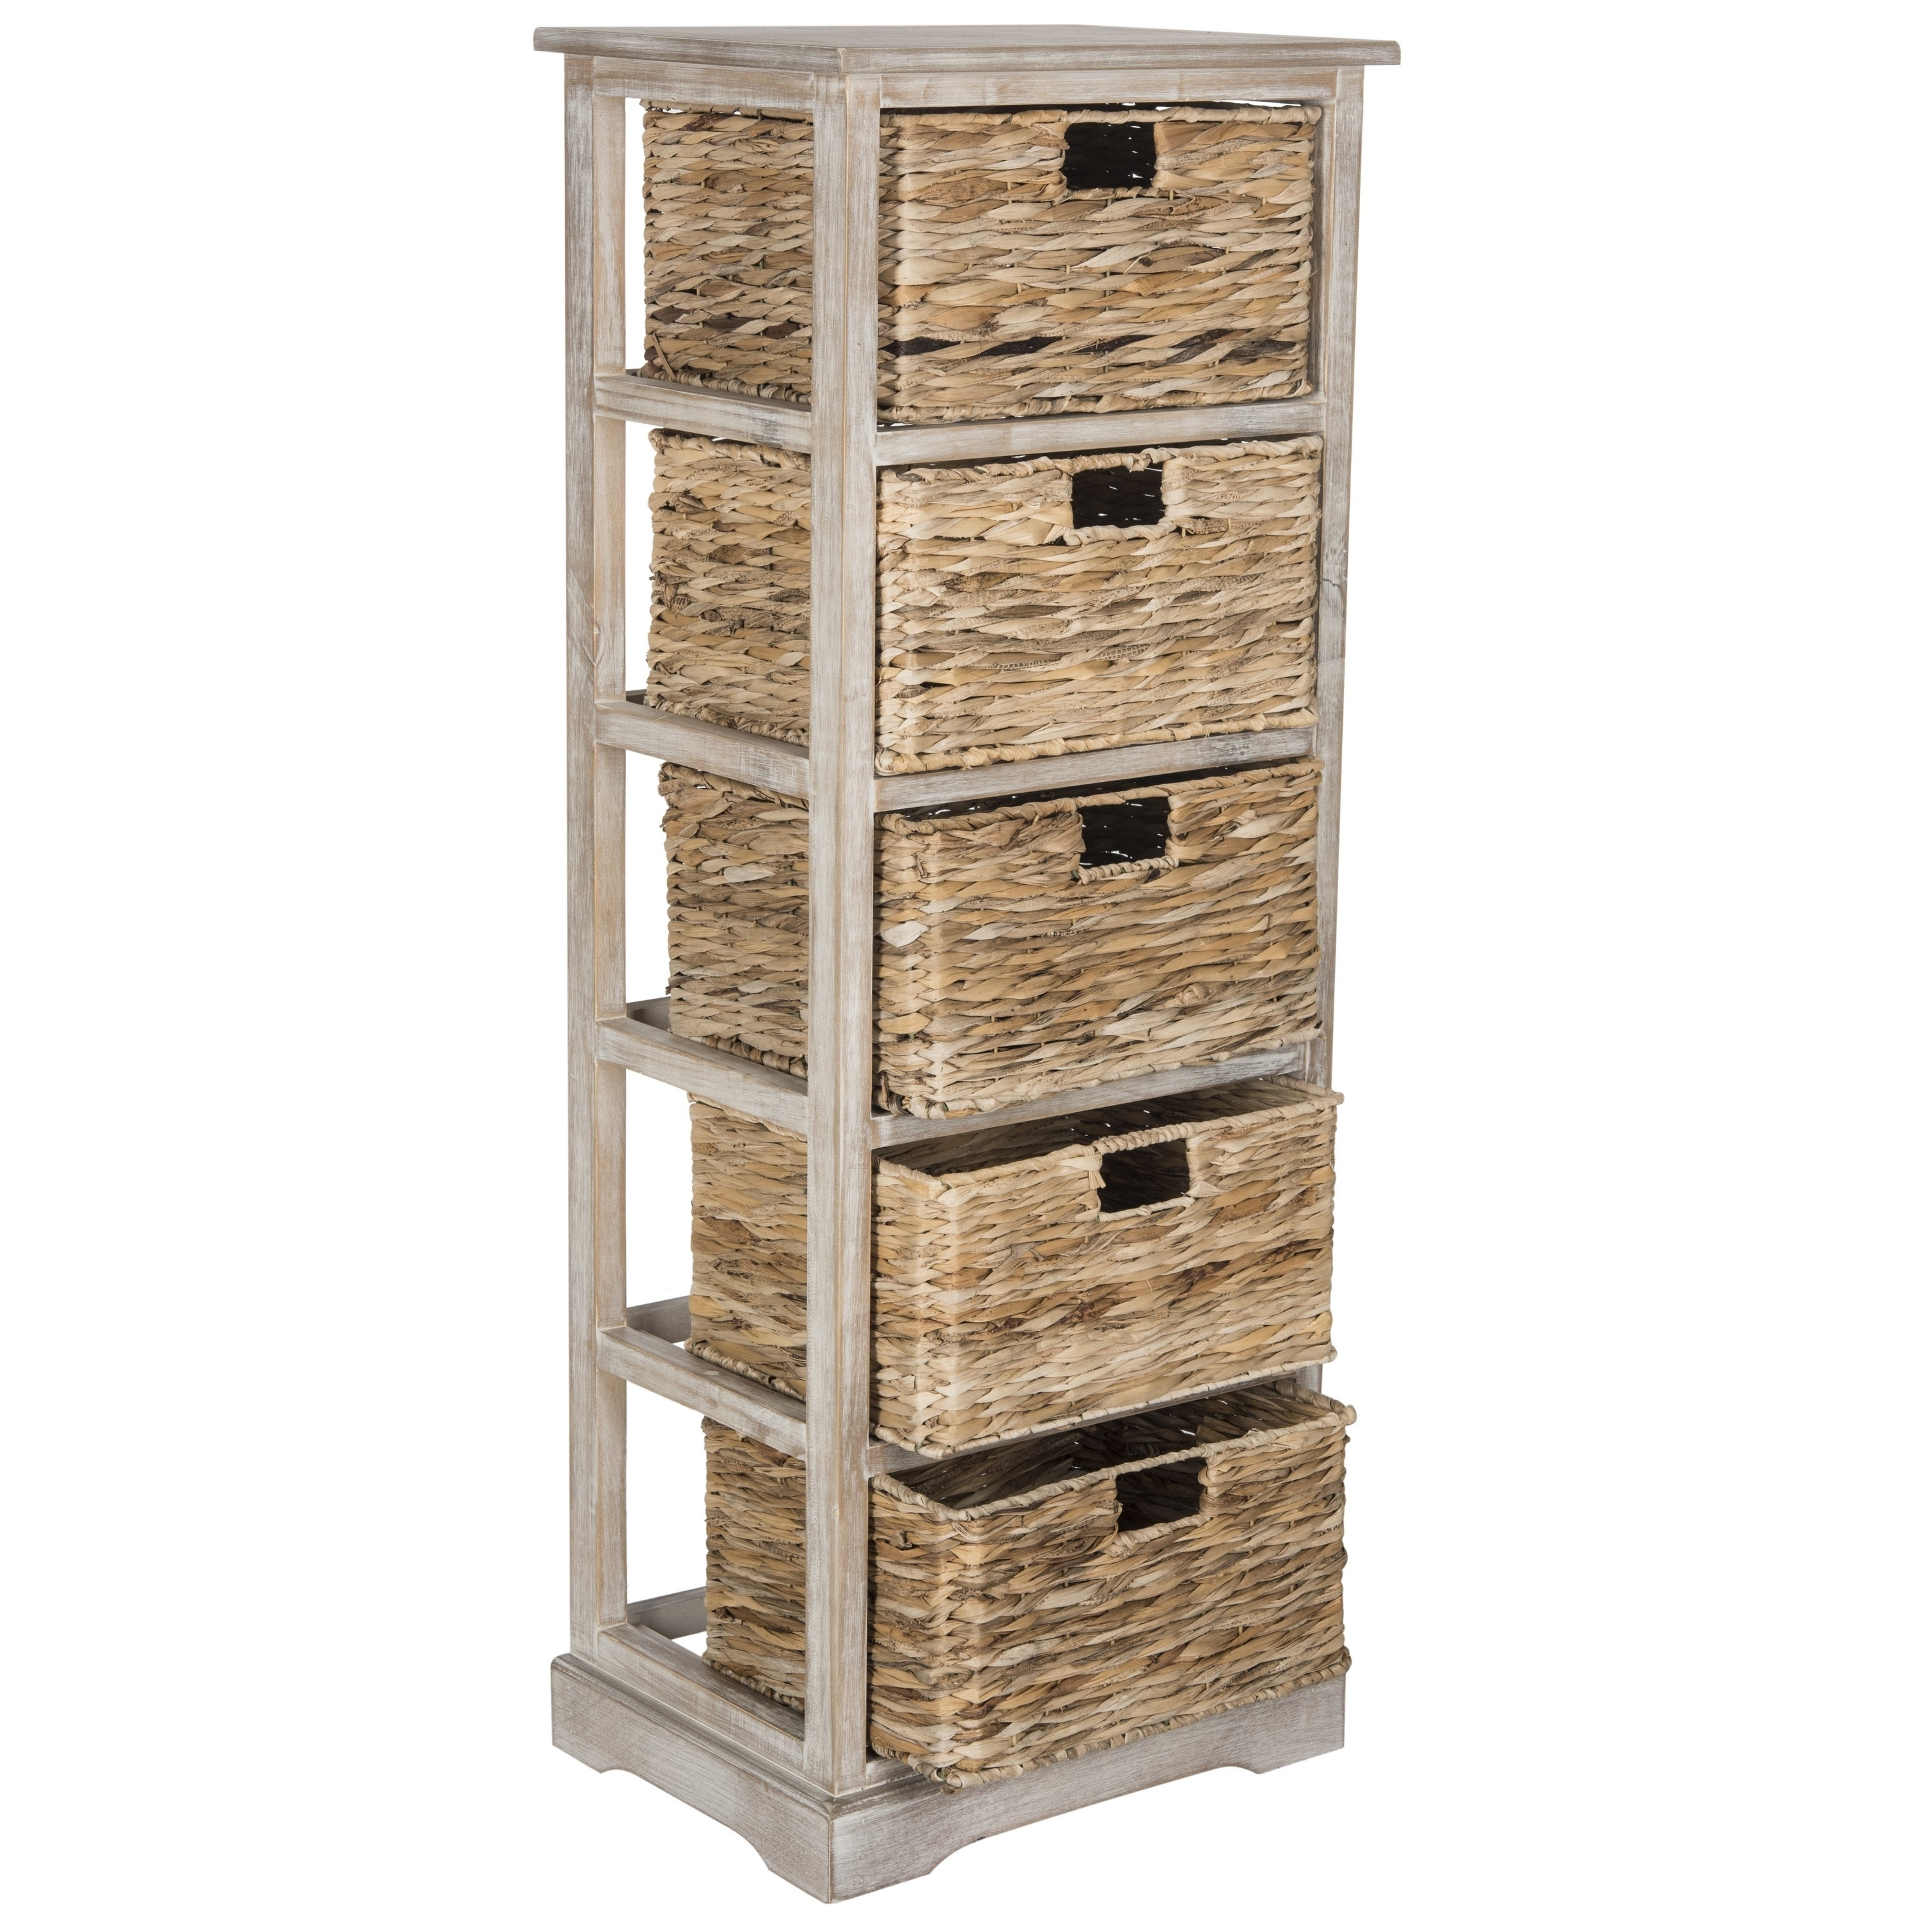 Shop Safavieh Vedette Winter Melody 5 Drawer Wicker Basket Storage Tower    Free Shipping Today   Overstock.com   10857153